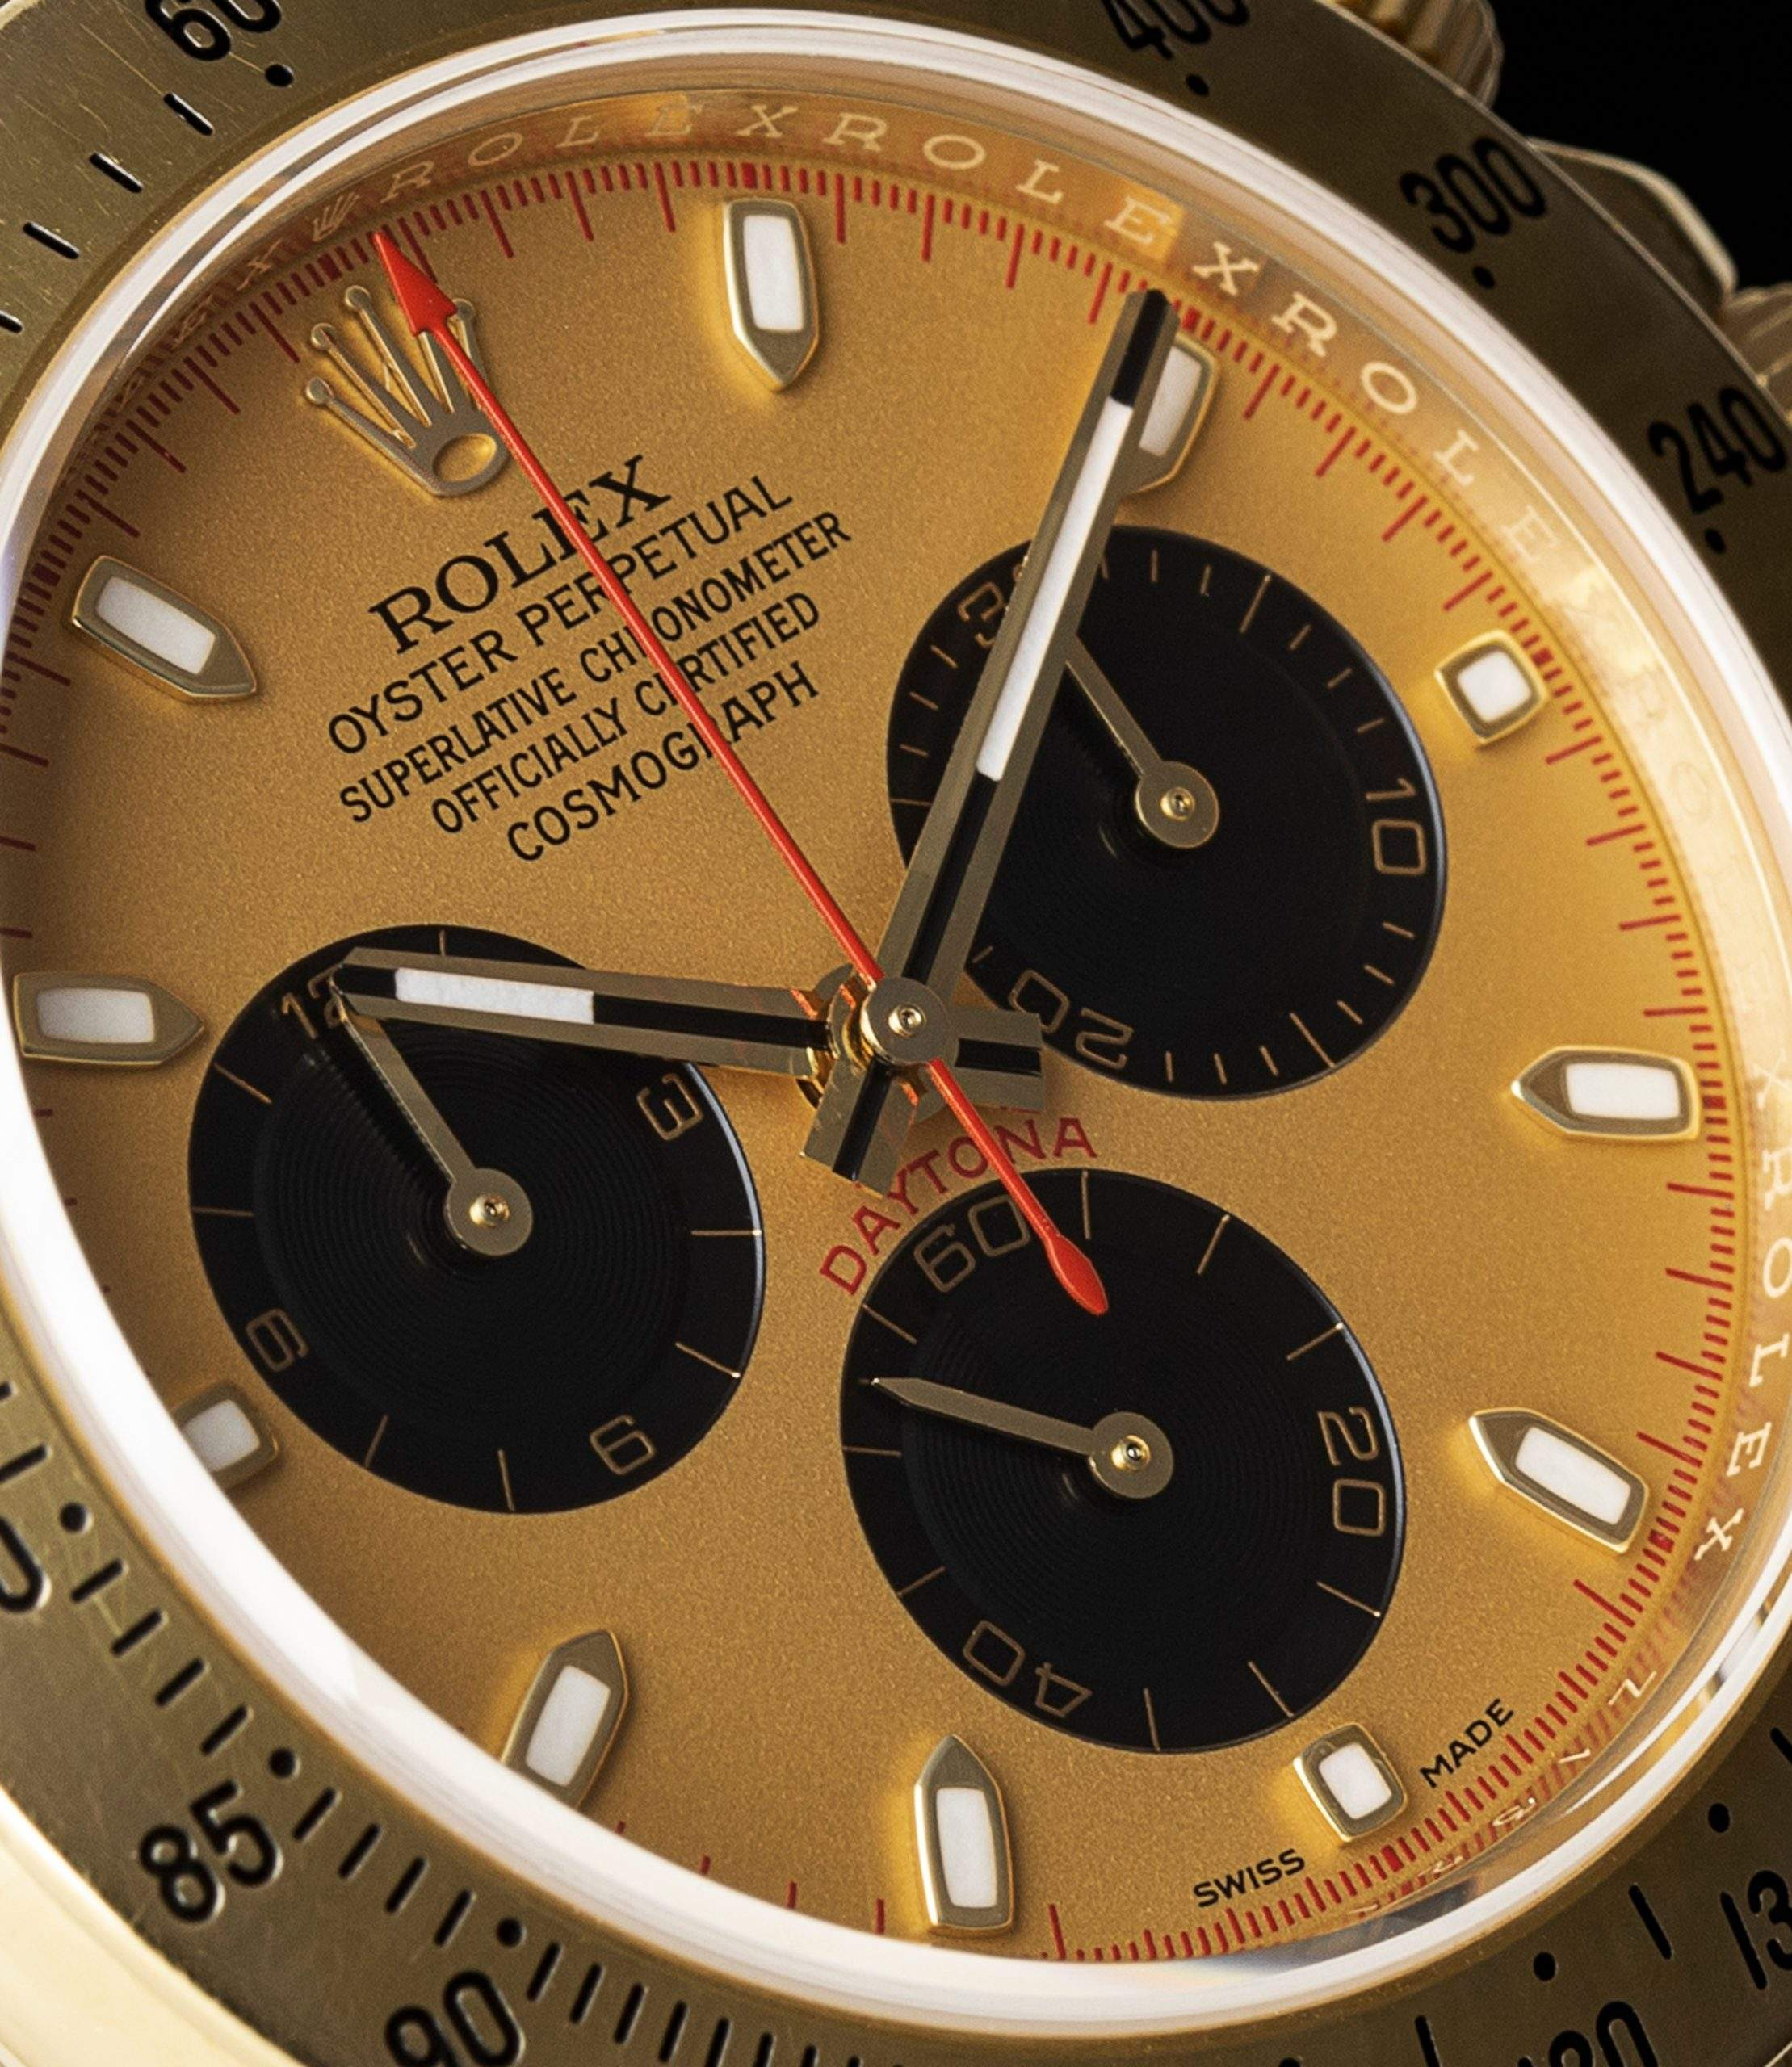 Rolex Daytona ref. 116528 is, without a doubt, the star of watches in The Wolf of Wall Street.